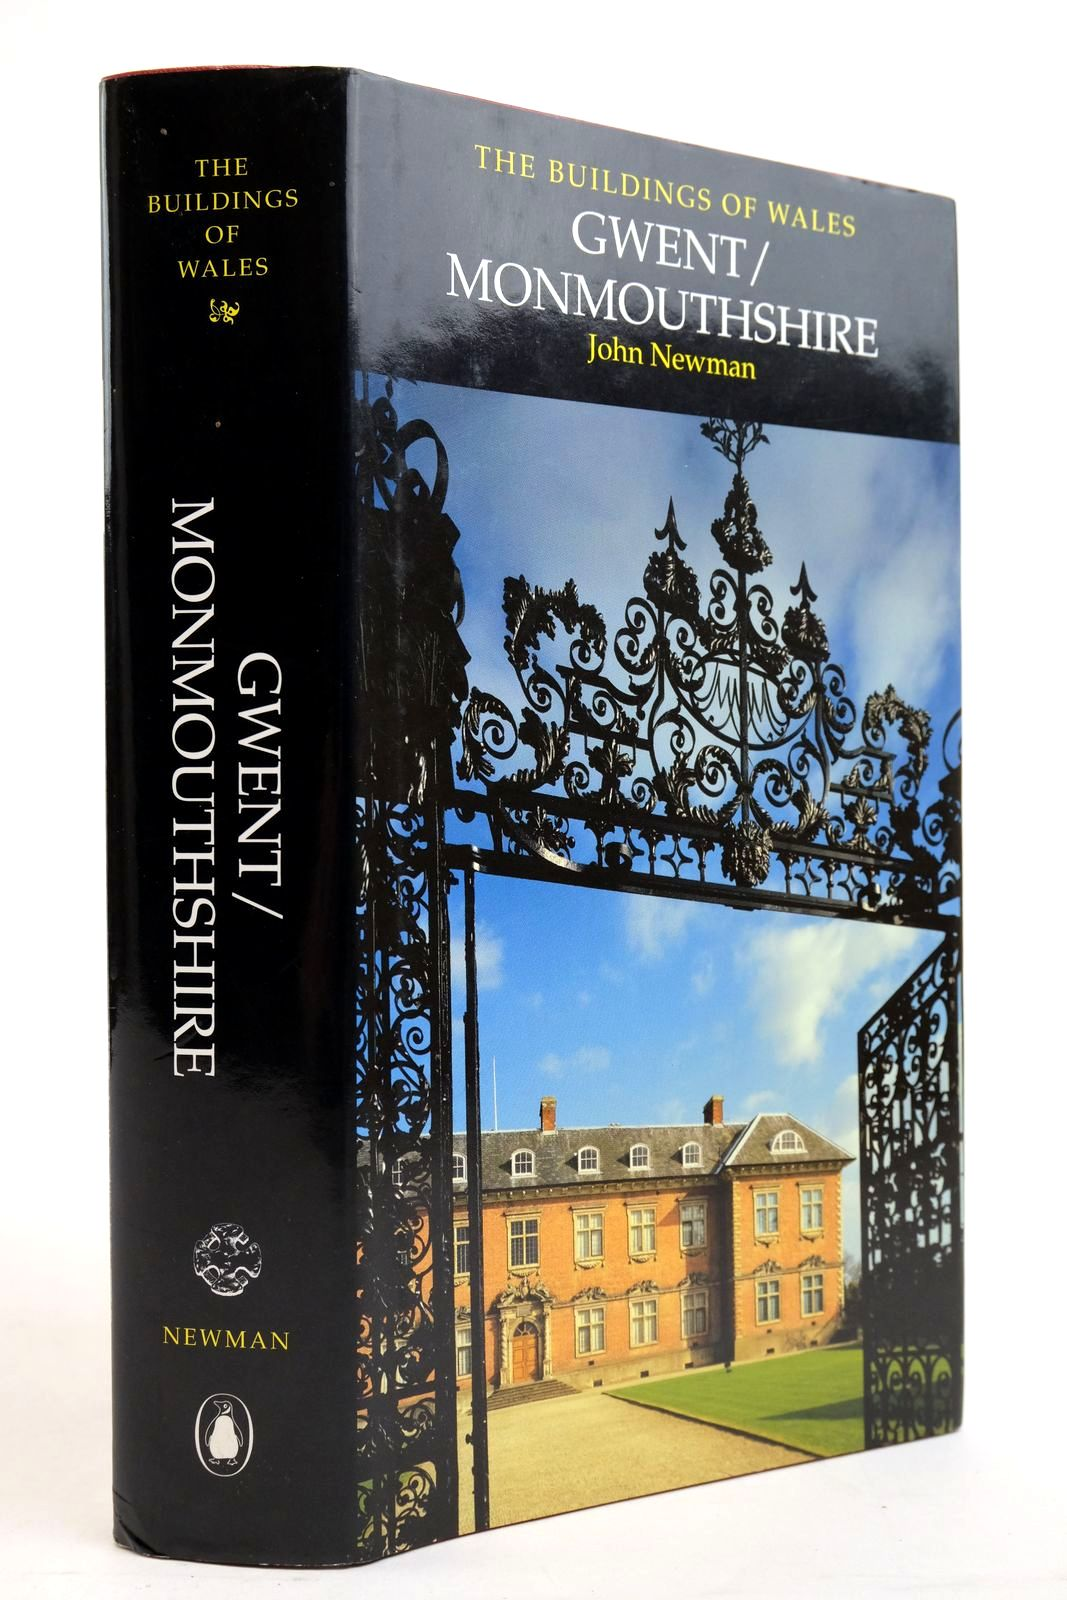 Photo of GWENT/MONMOUTHSHIRE (BUILDINGS OF WALES) written by Newman, John published by Penguin (STOCK CODE: 2134440)  for sale by Stella & Rose's Books